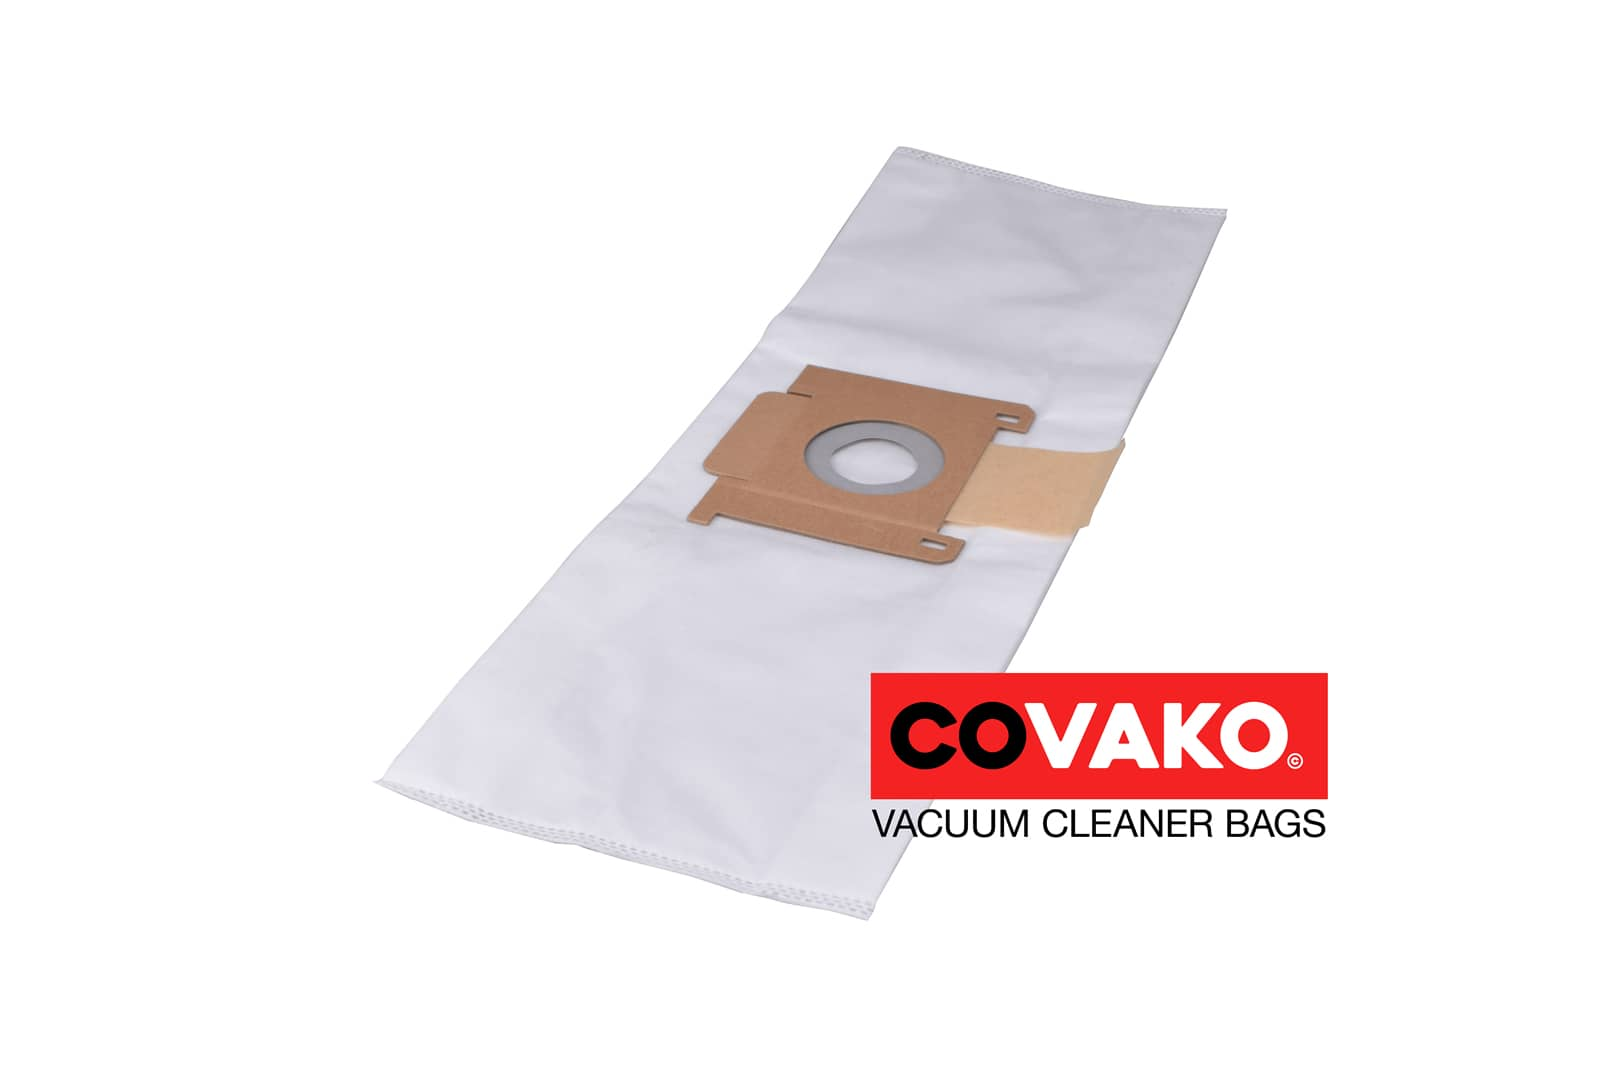 Oehme Otto C 5 / Synthesis - Oehme Otto vacuum cleaner bags